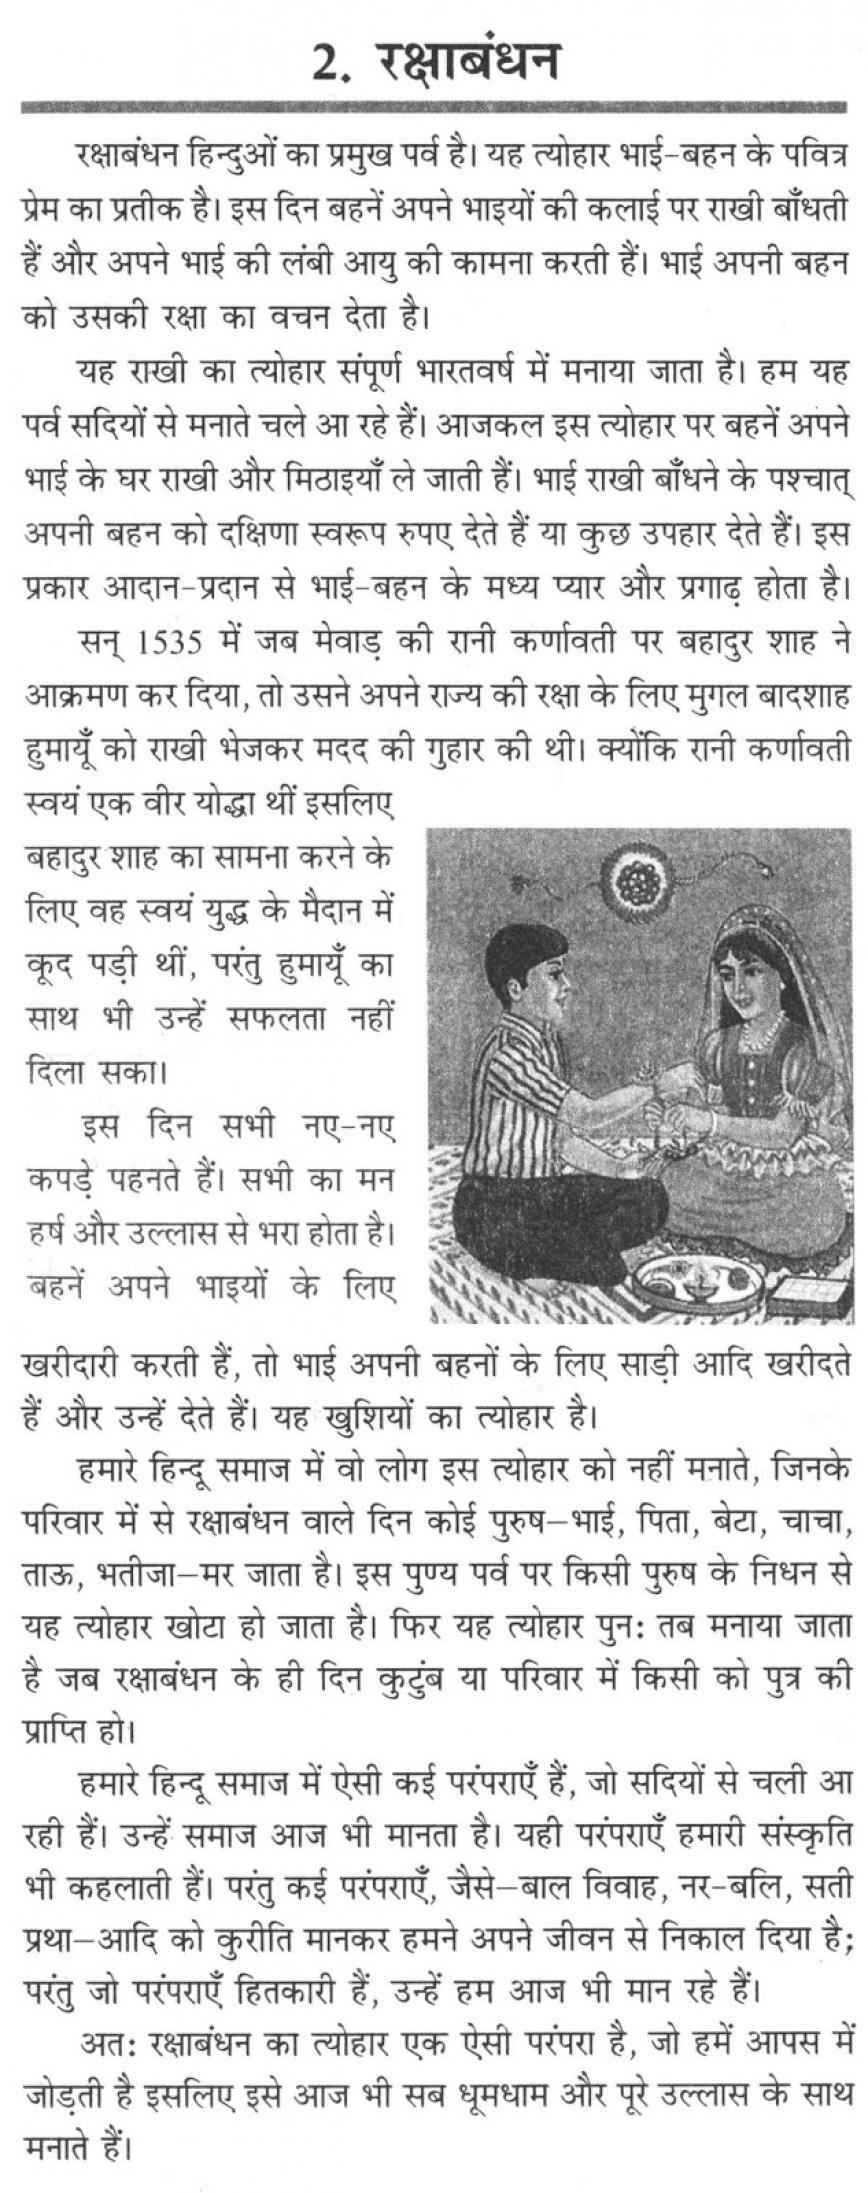 015 Raksha20bandhan20essay20in20hindi202016 Essay Example Good Habits In Exceptional Hindi Bad Eating Habit 868